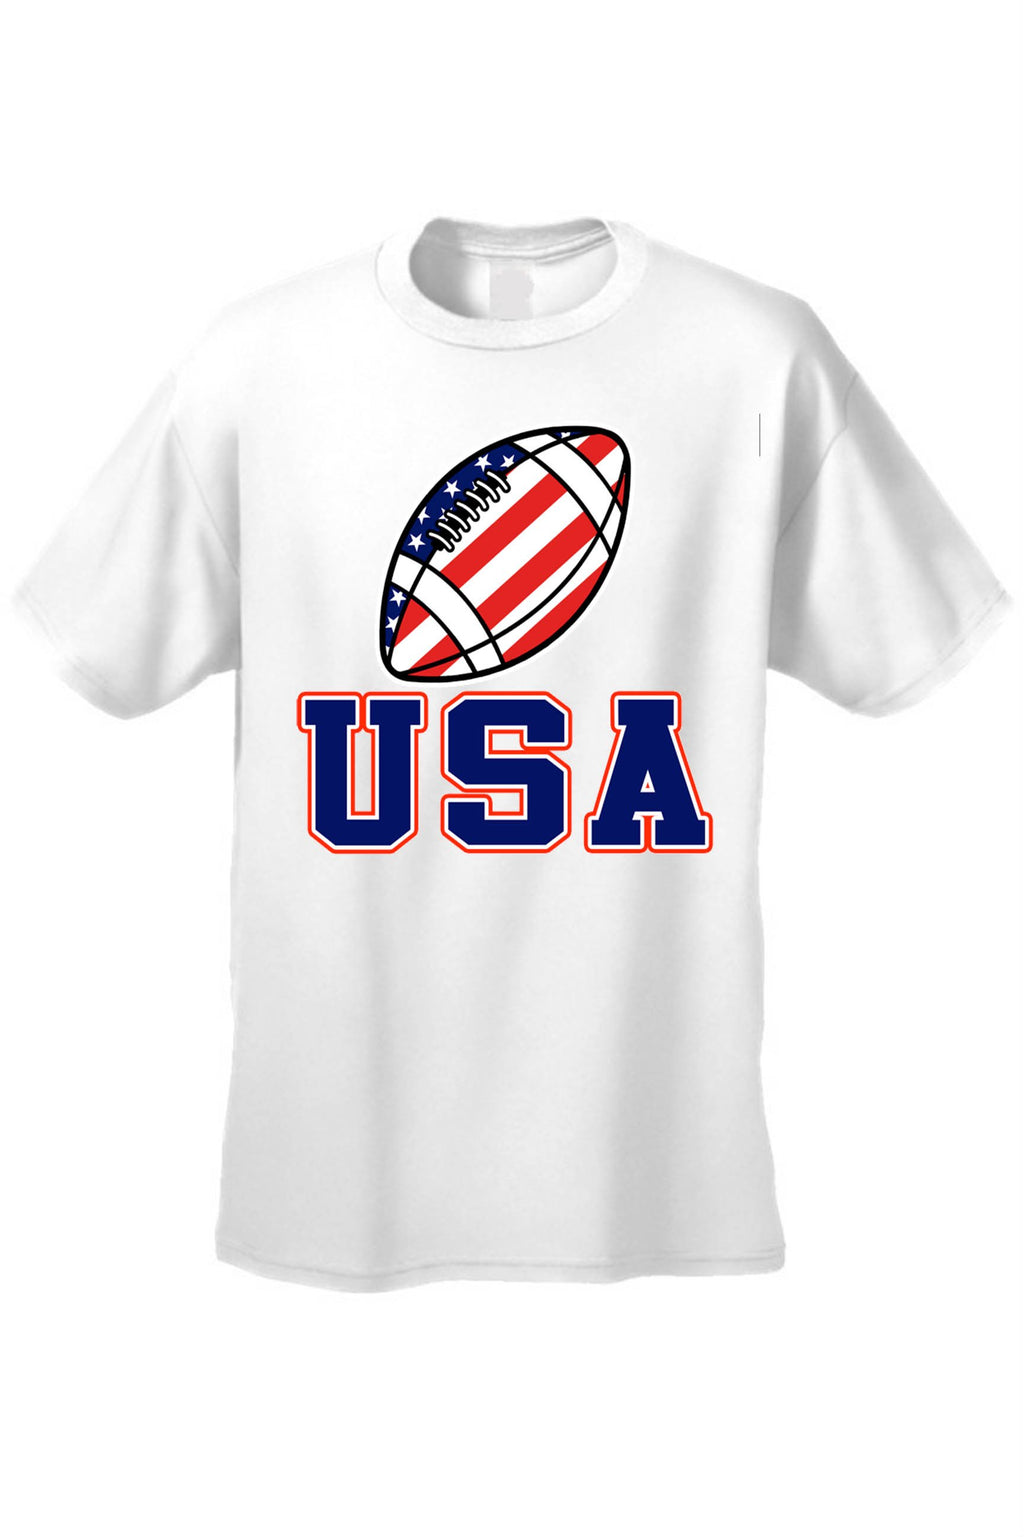 USA Flag Tank Top Men's Shirt Football Pride